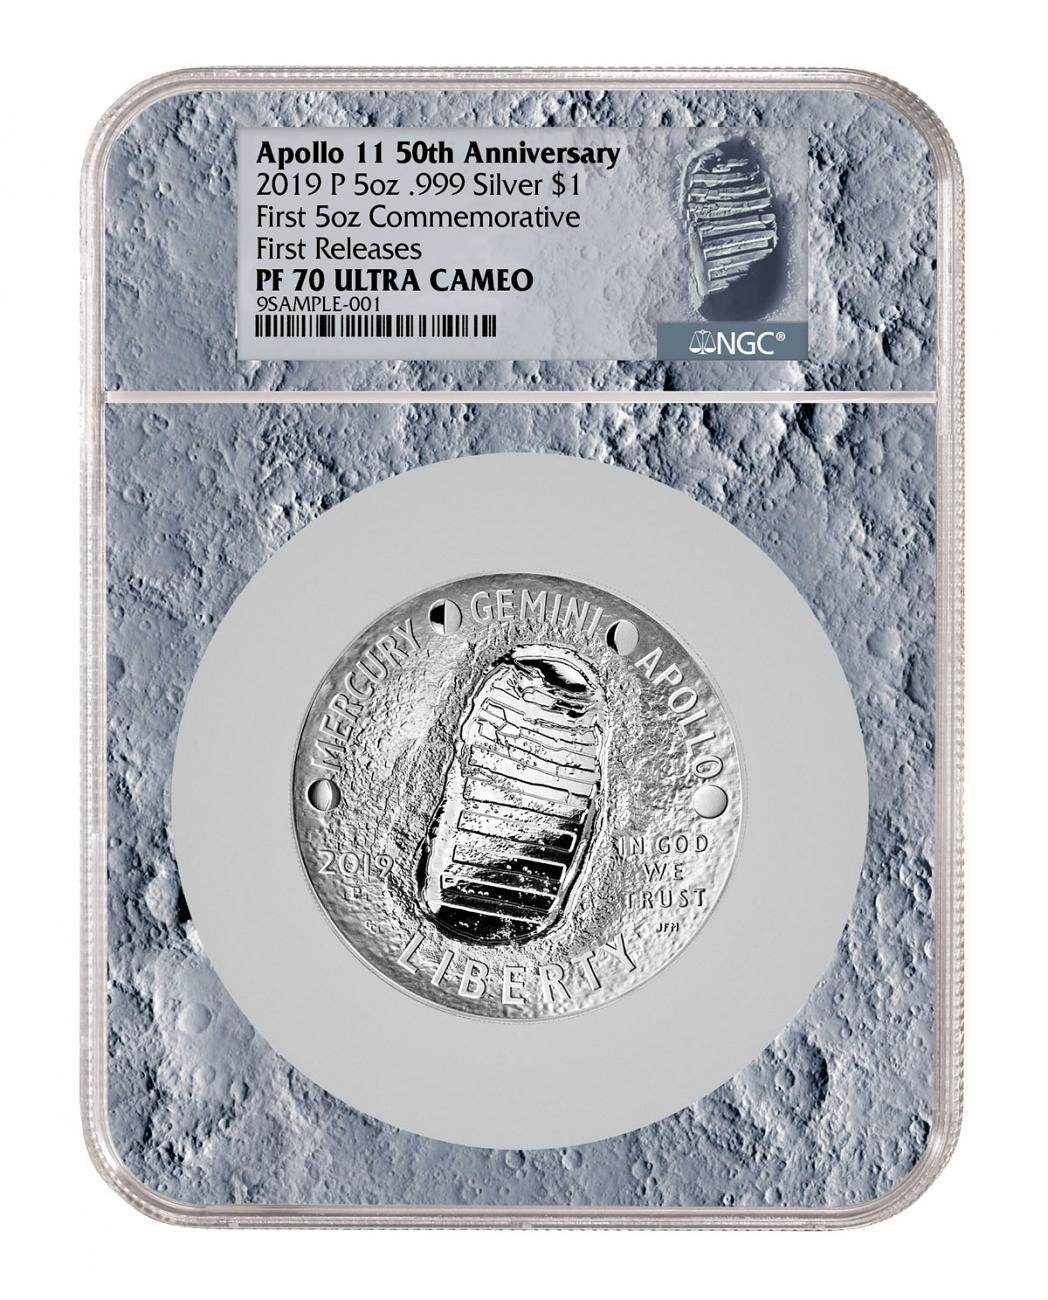 2019-P Apollo 11 50th Anniversary Commemorative 5 oz. Silver Dollar Proof Coin NGC PF70 FR With Apollo 11 Mission Patch Moon Core Holder